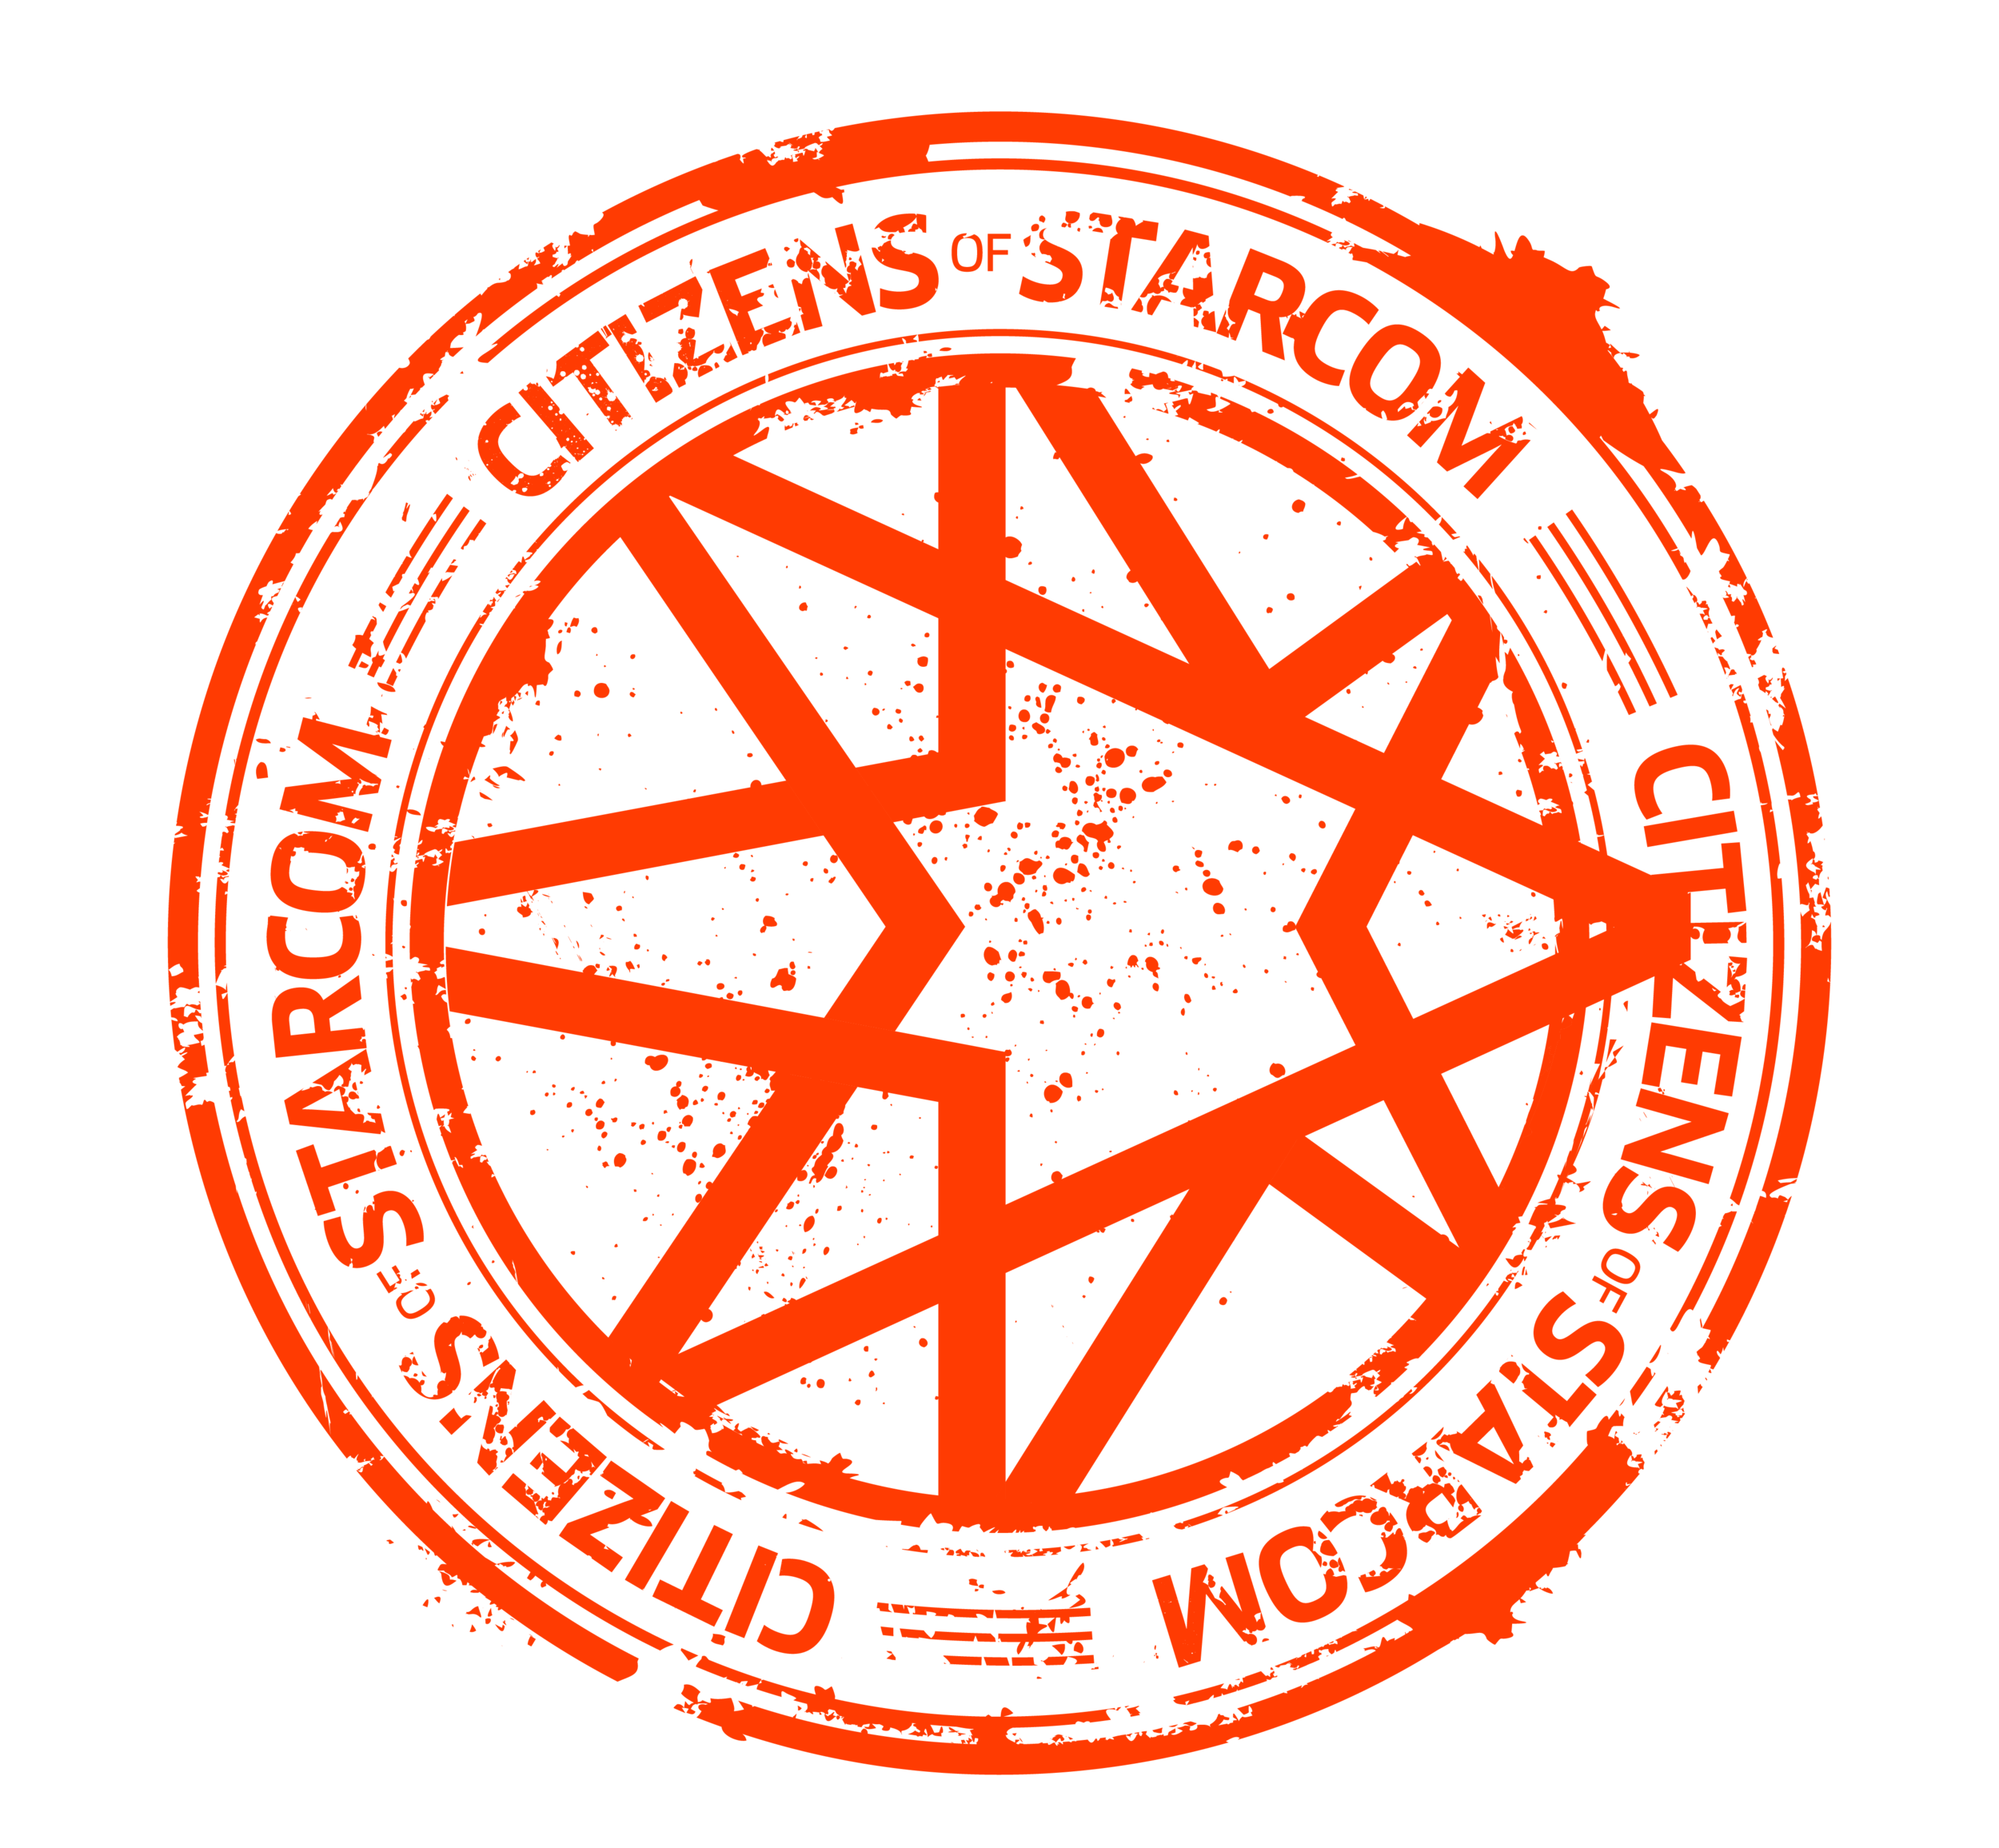 Starcom-AW_-_Citizens_of_Starcom_(red-high)-01.png